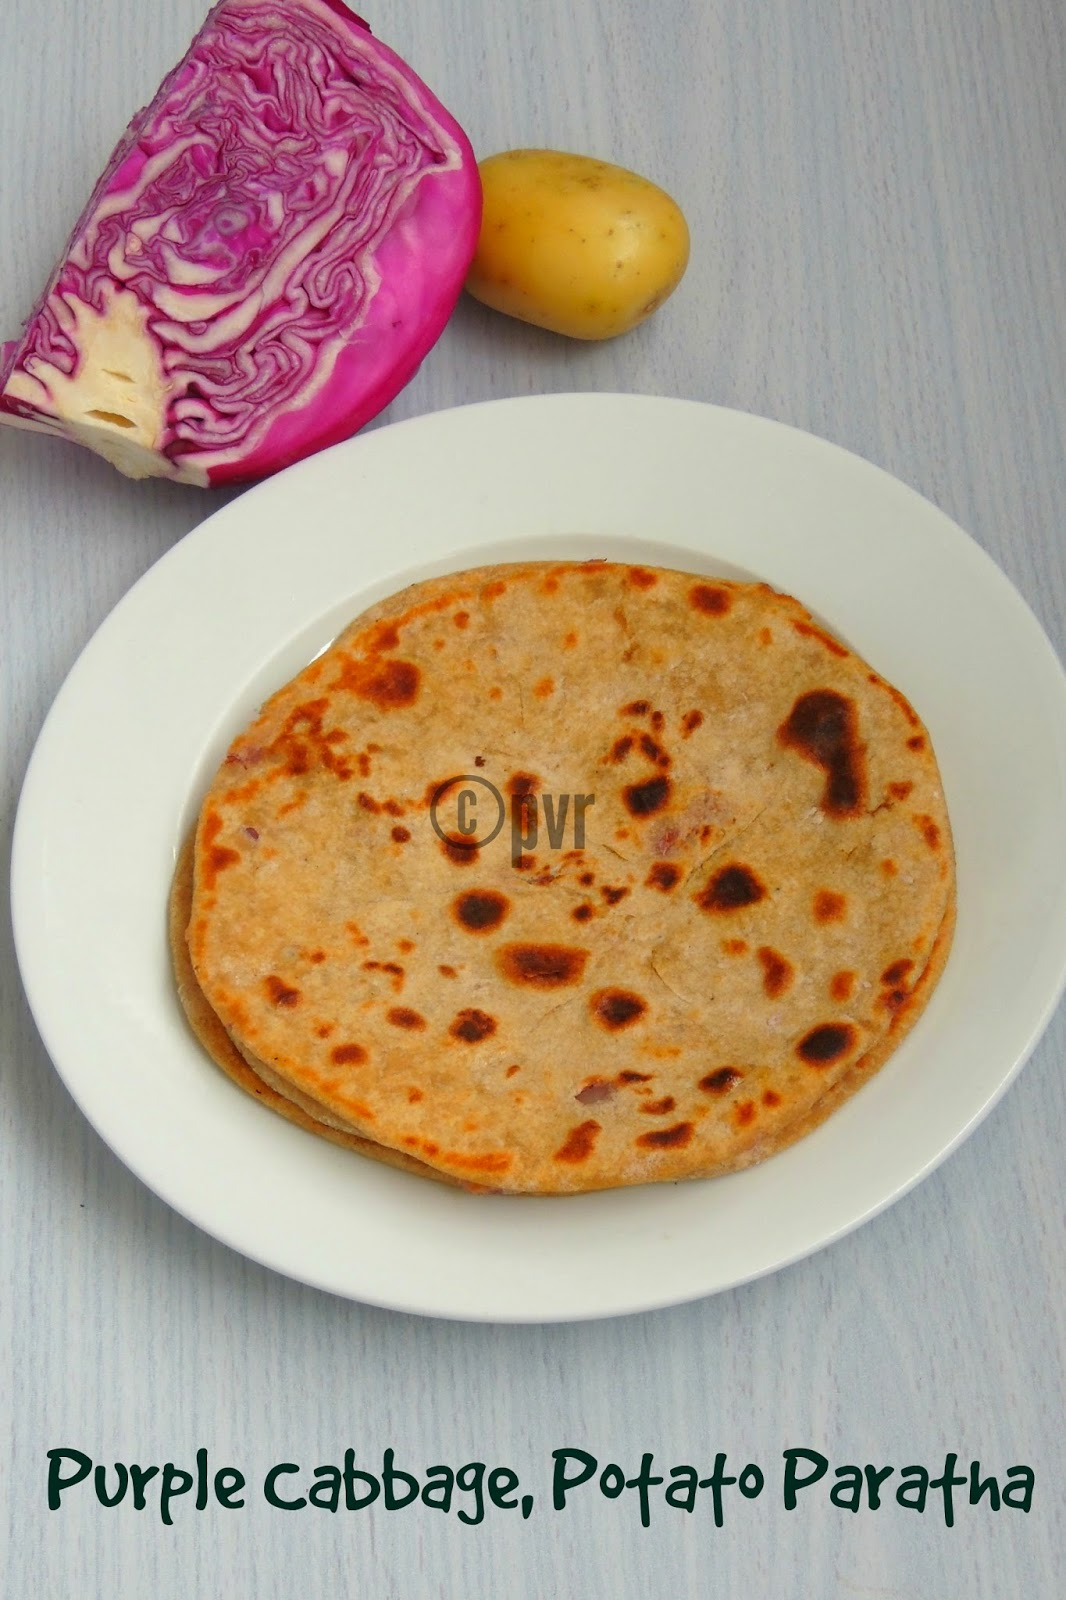 Cabbage,Potato Paratha